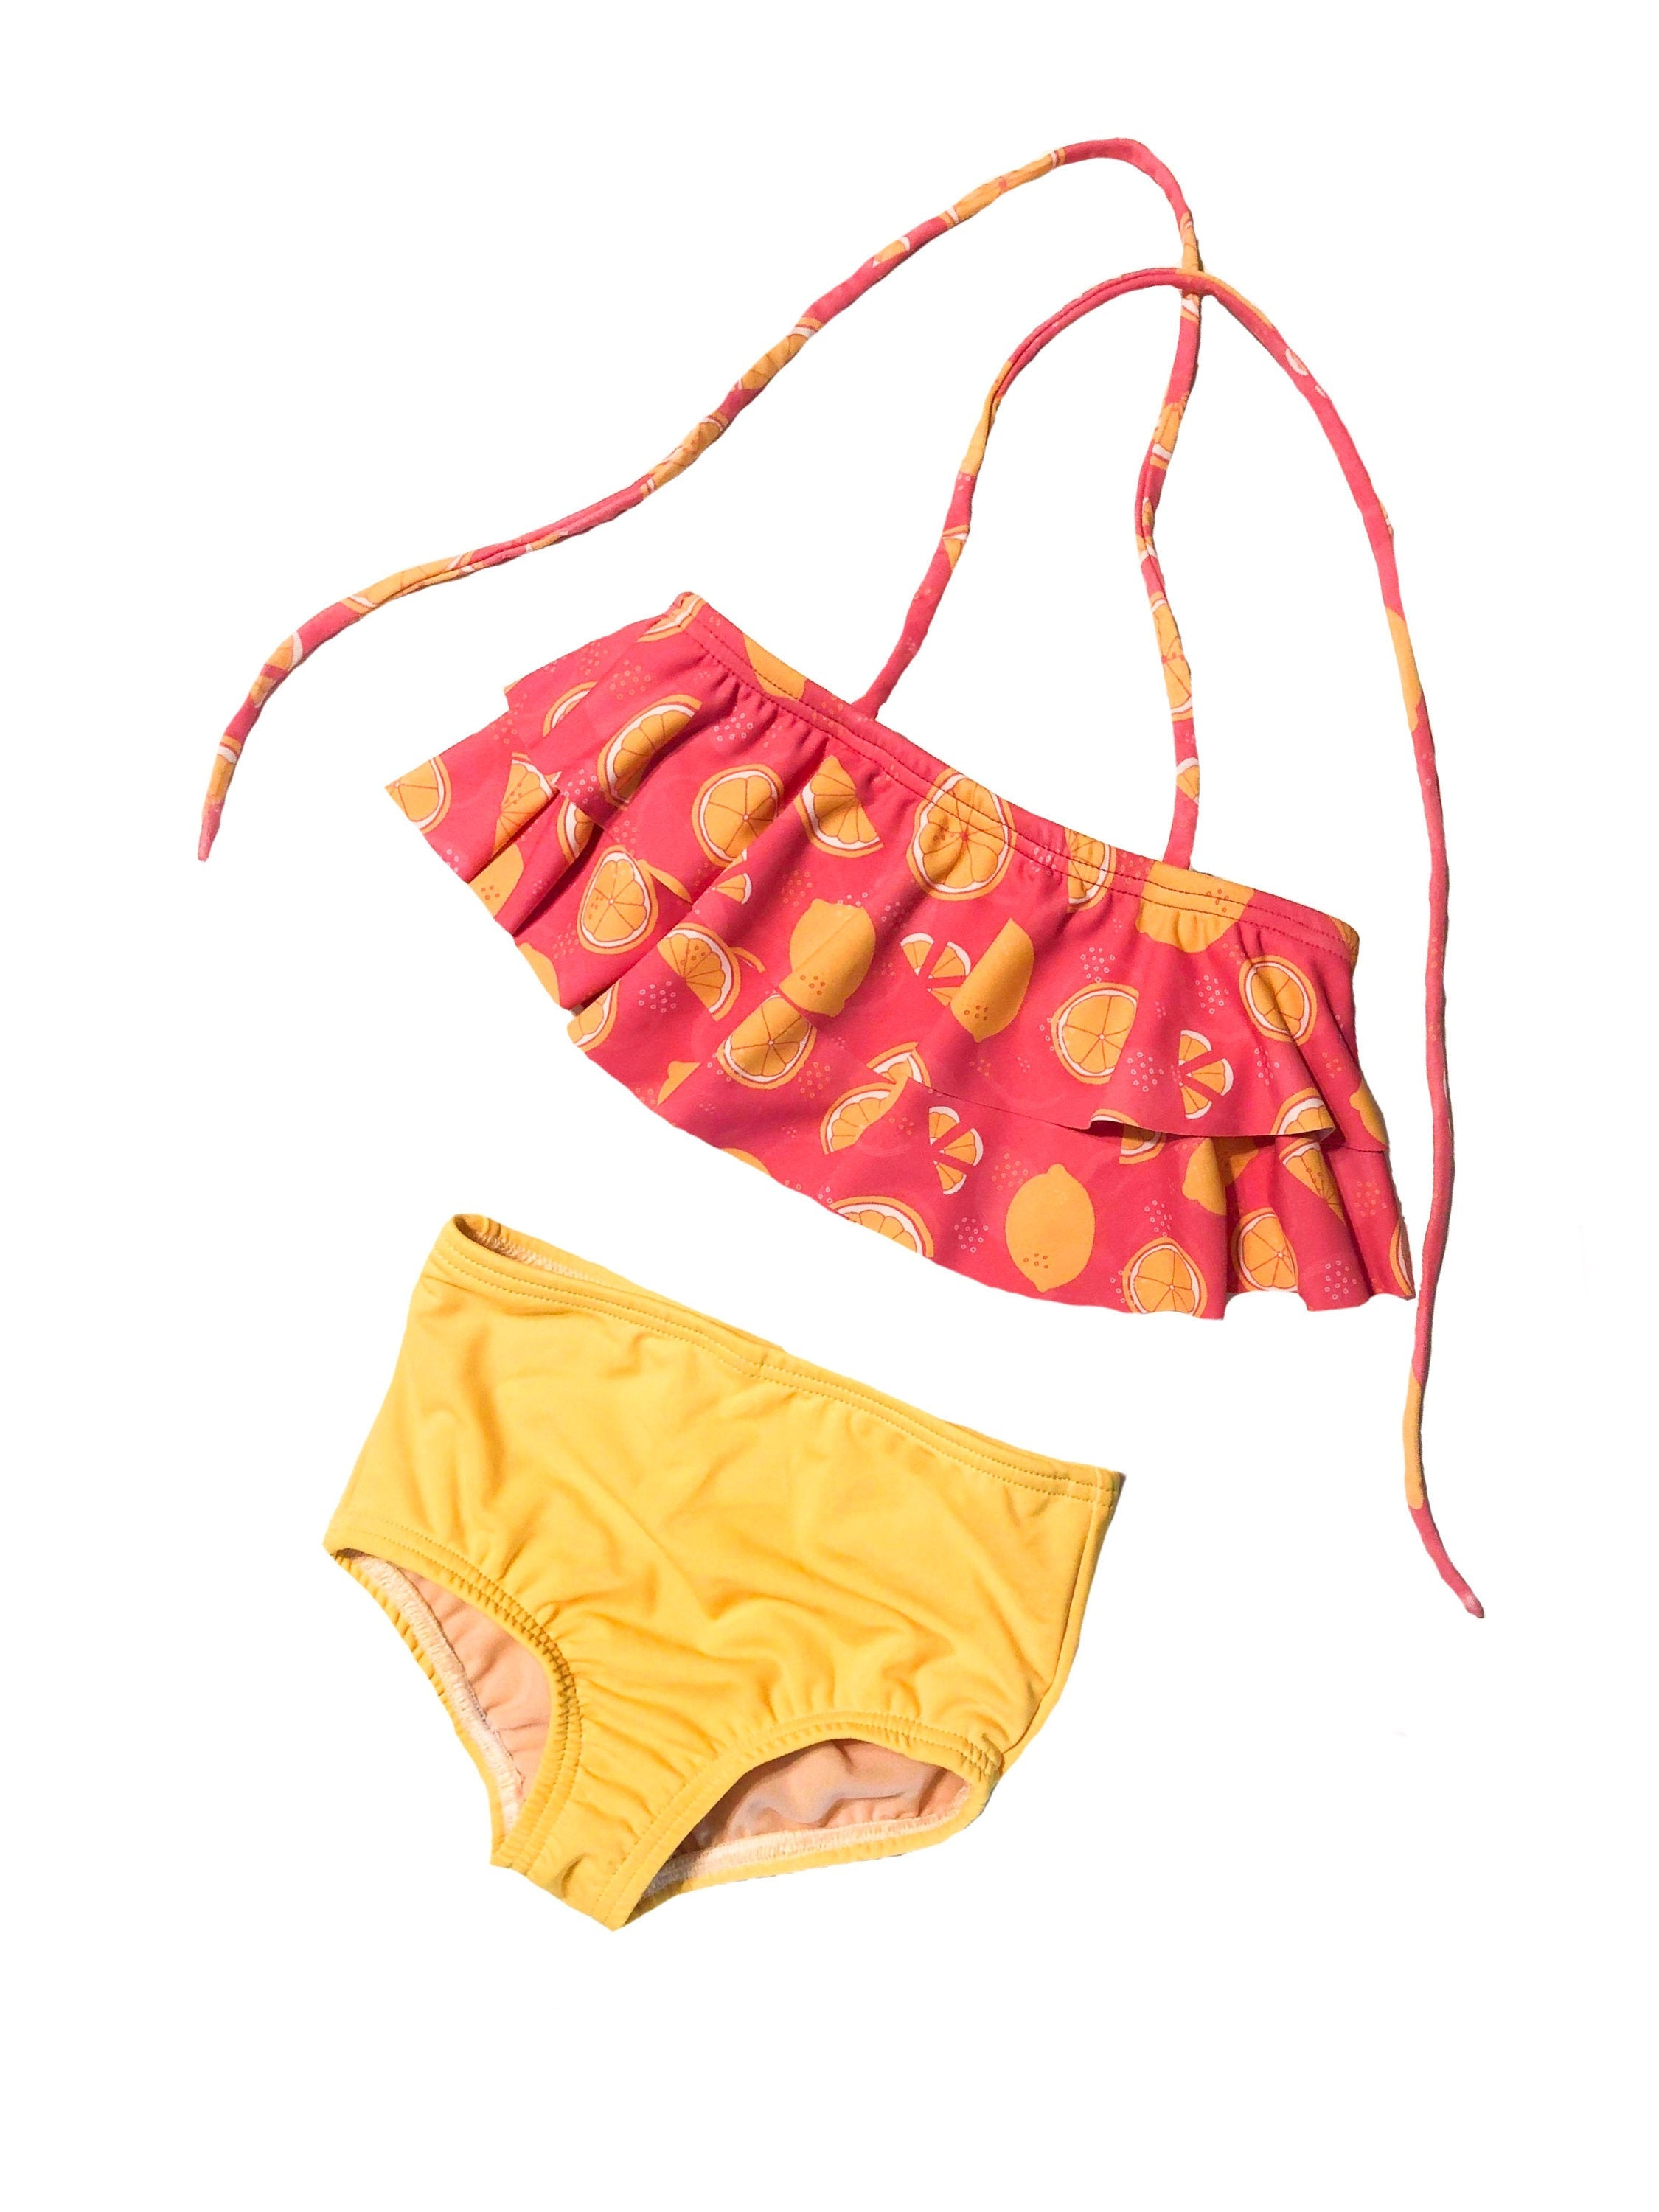 Yellow & Pink Lemonade Two-Piece Ruffle Girls Swimsuit - Hot Pink Lemon Double Ruffle Kids Baby Toddler Bathing Suit - High-Waisted Bottoms